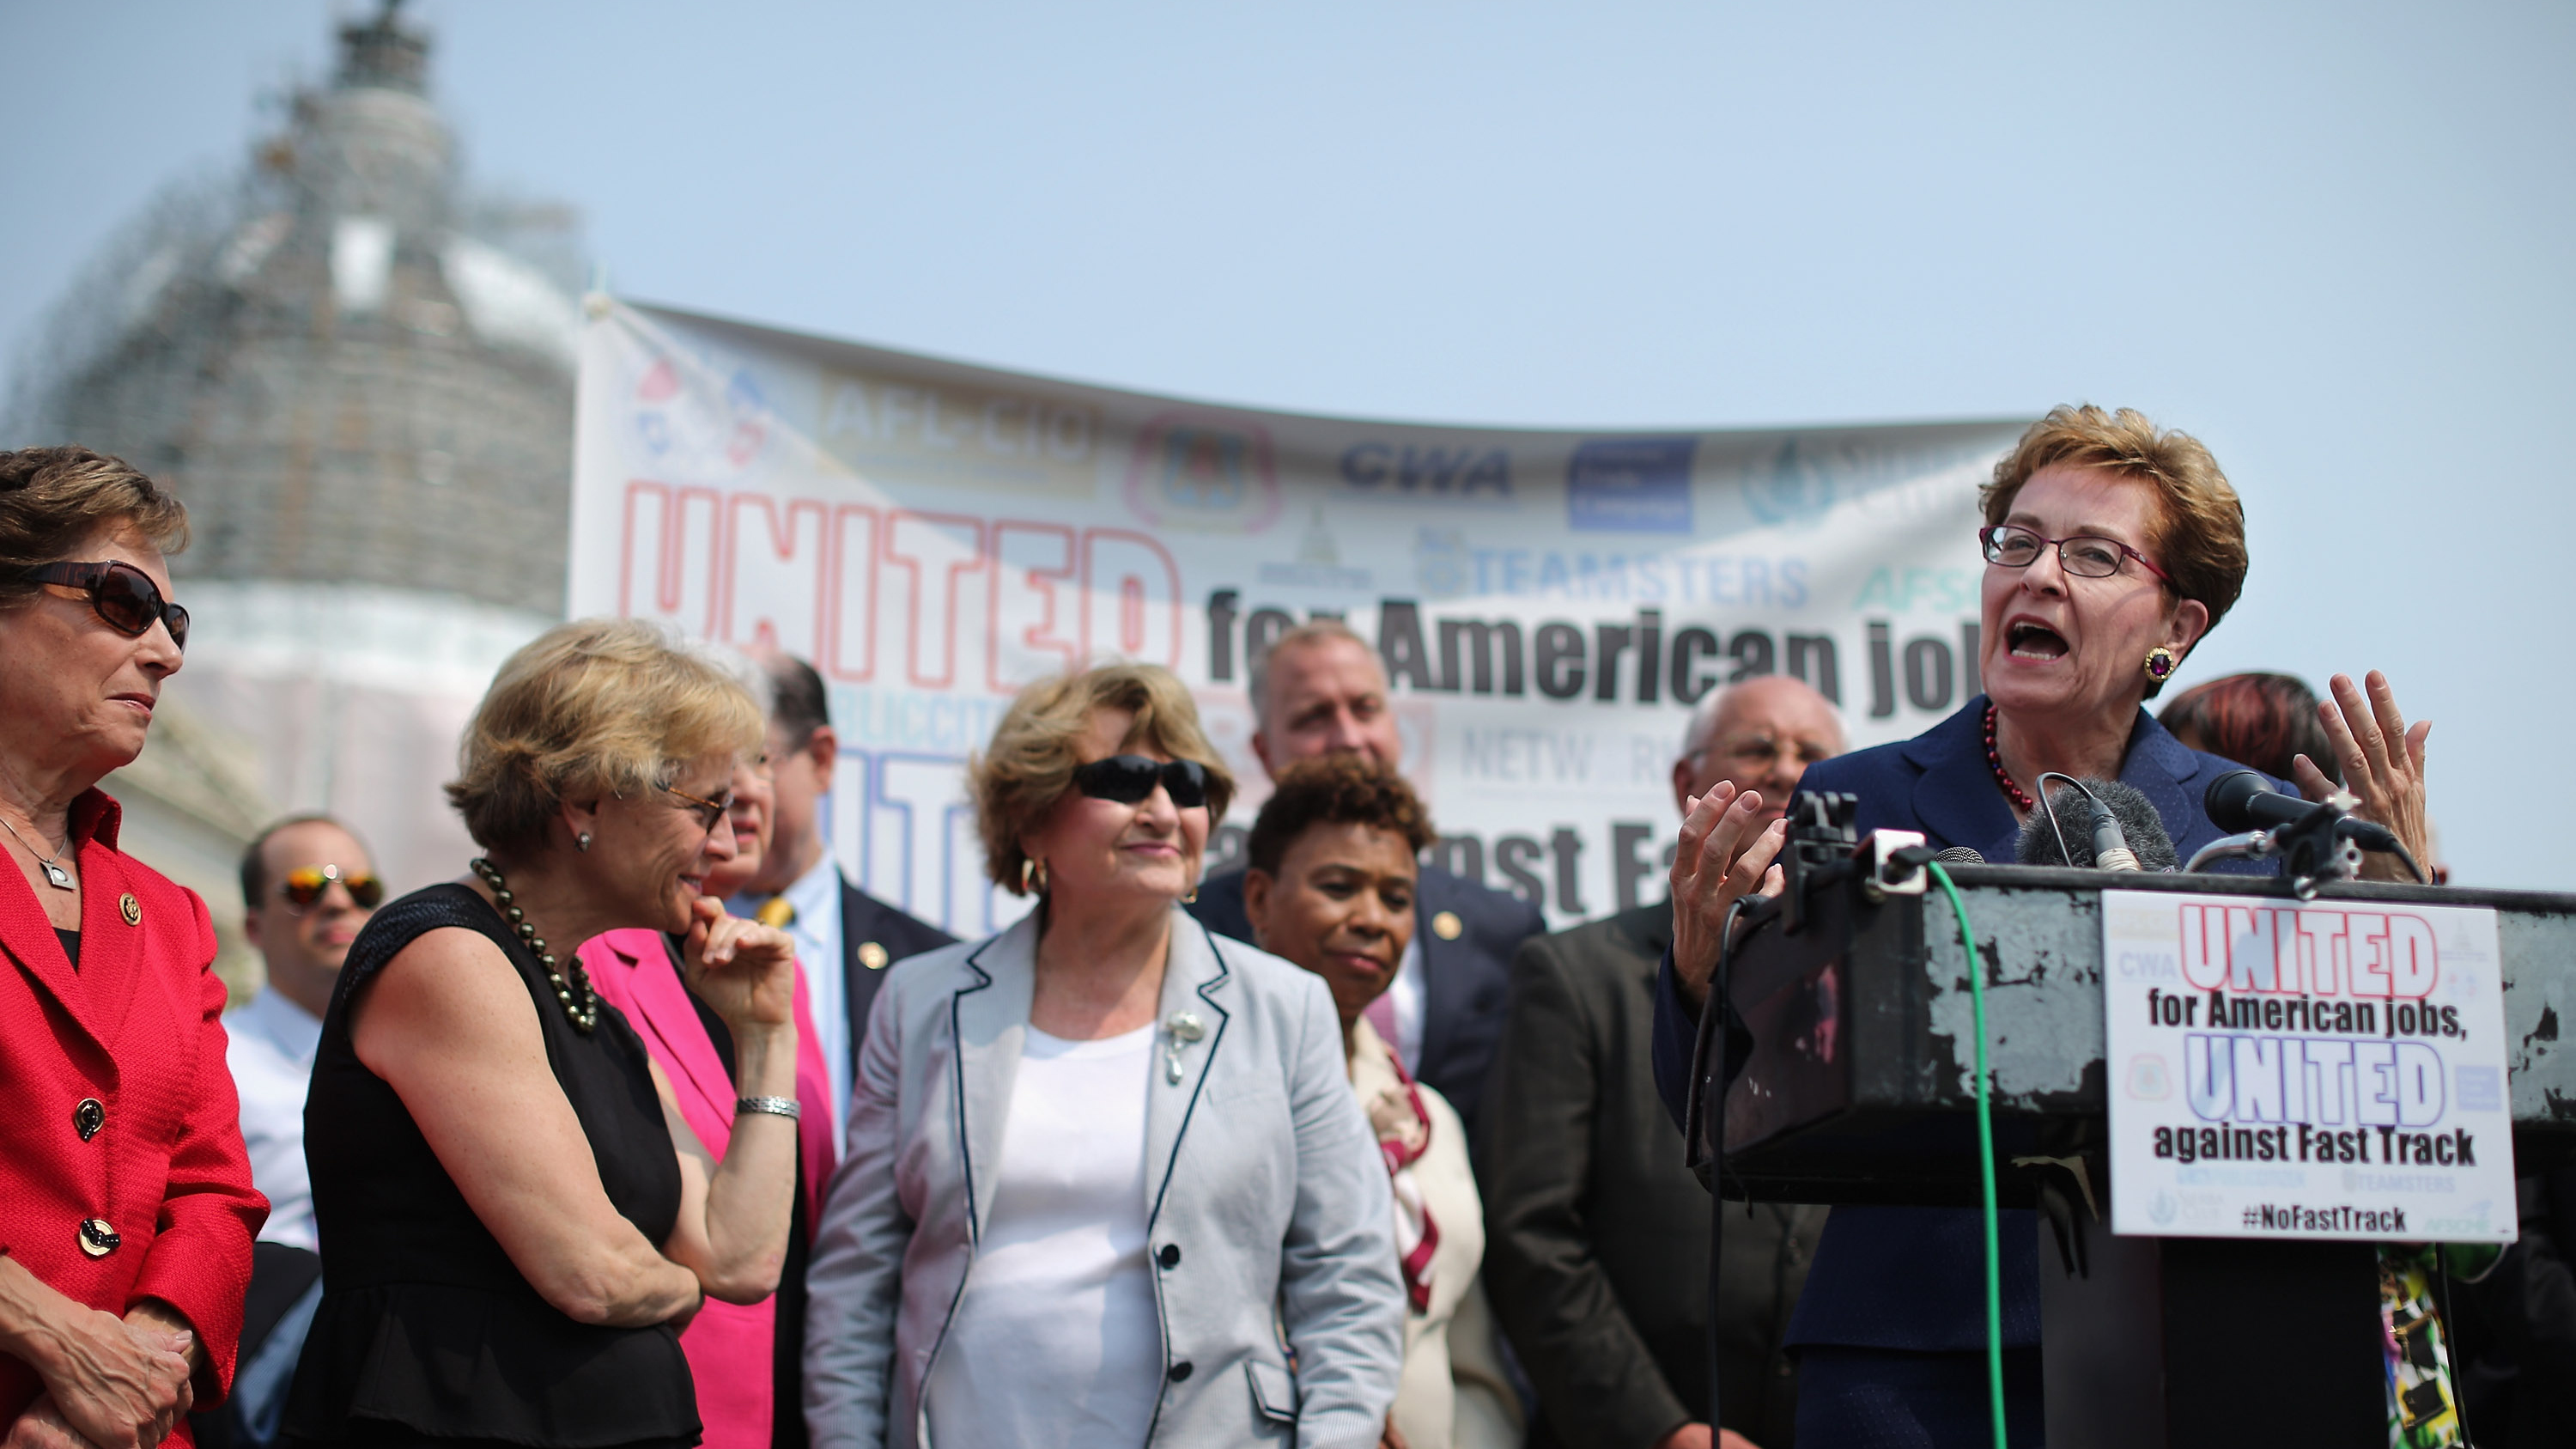 Rep. Marcy Kaptur, D-Ohio, and fellow Democratic members of Congress hold a news conference to voice their opposition to the Trans-Pacific Partnership trade deal. Chip Somodevilla/Getty Images